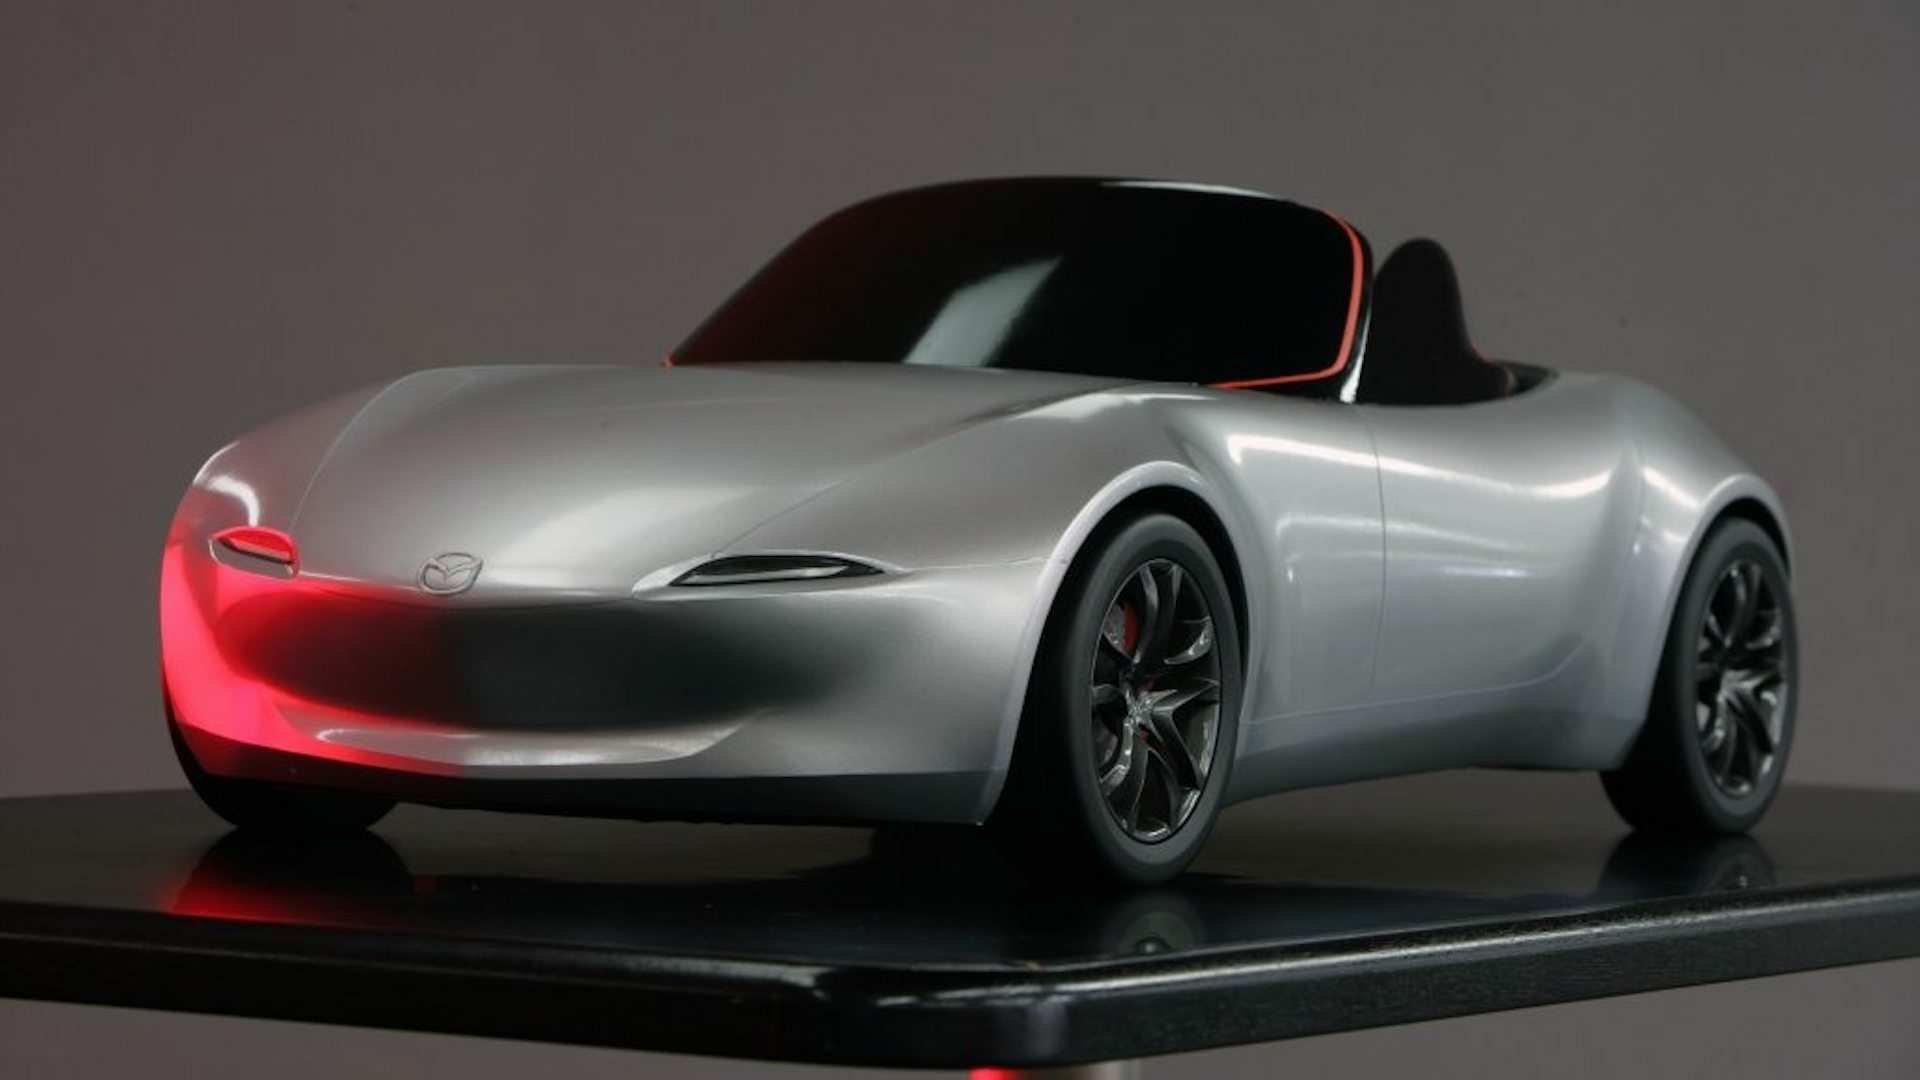 99 Best Review 2020 Mazda MX 5 Miata Specs and Review by 2020 Mazda MX 5 Miata